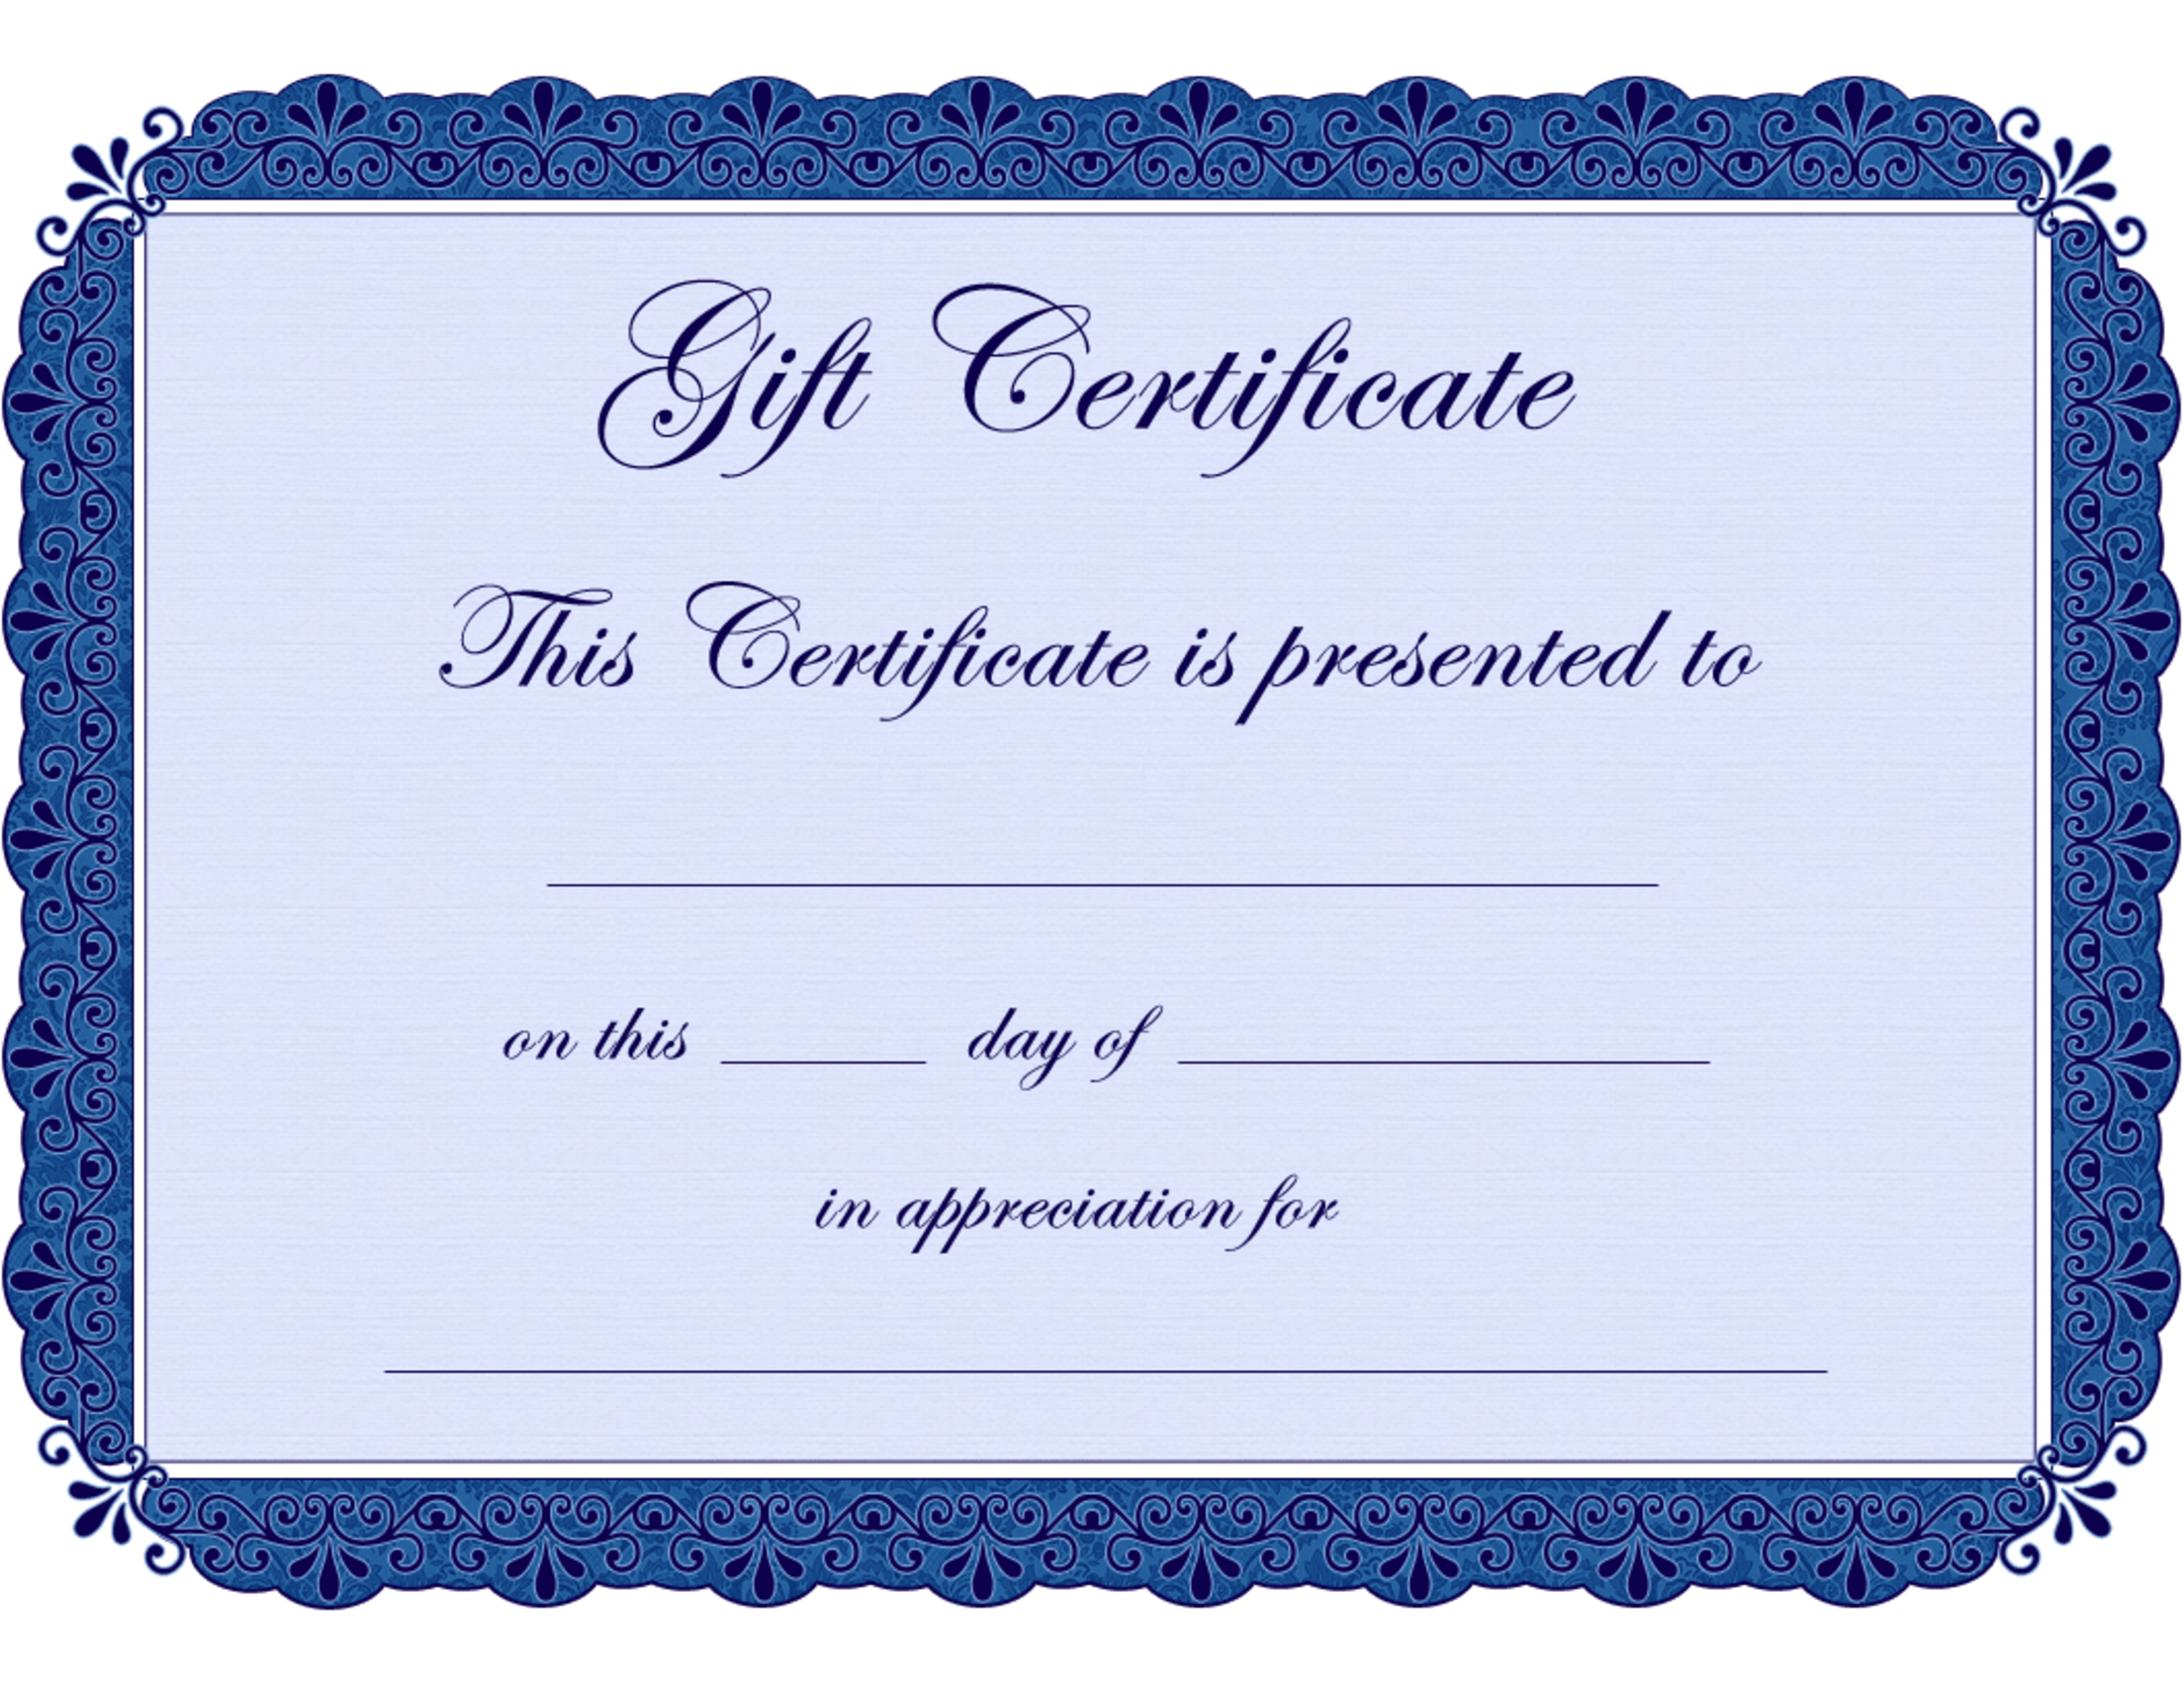 gift certificate template clipart clipart kid 48 certificate borders for word cliparts that you can